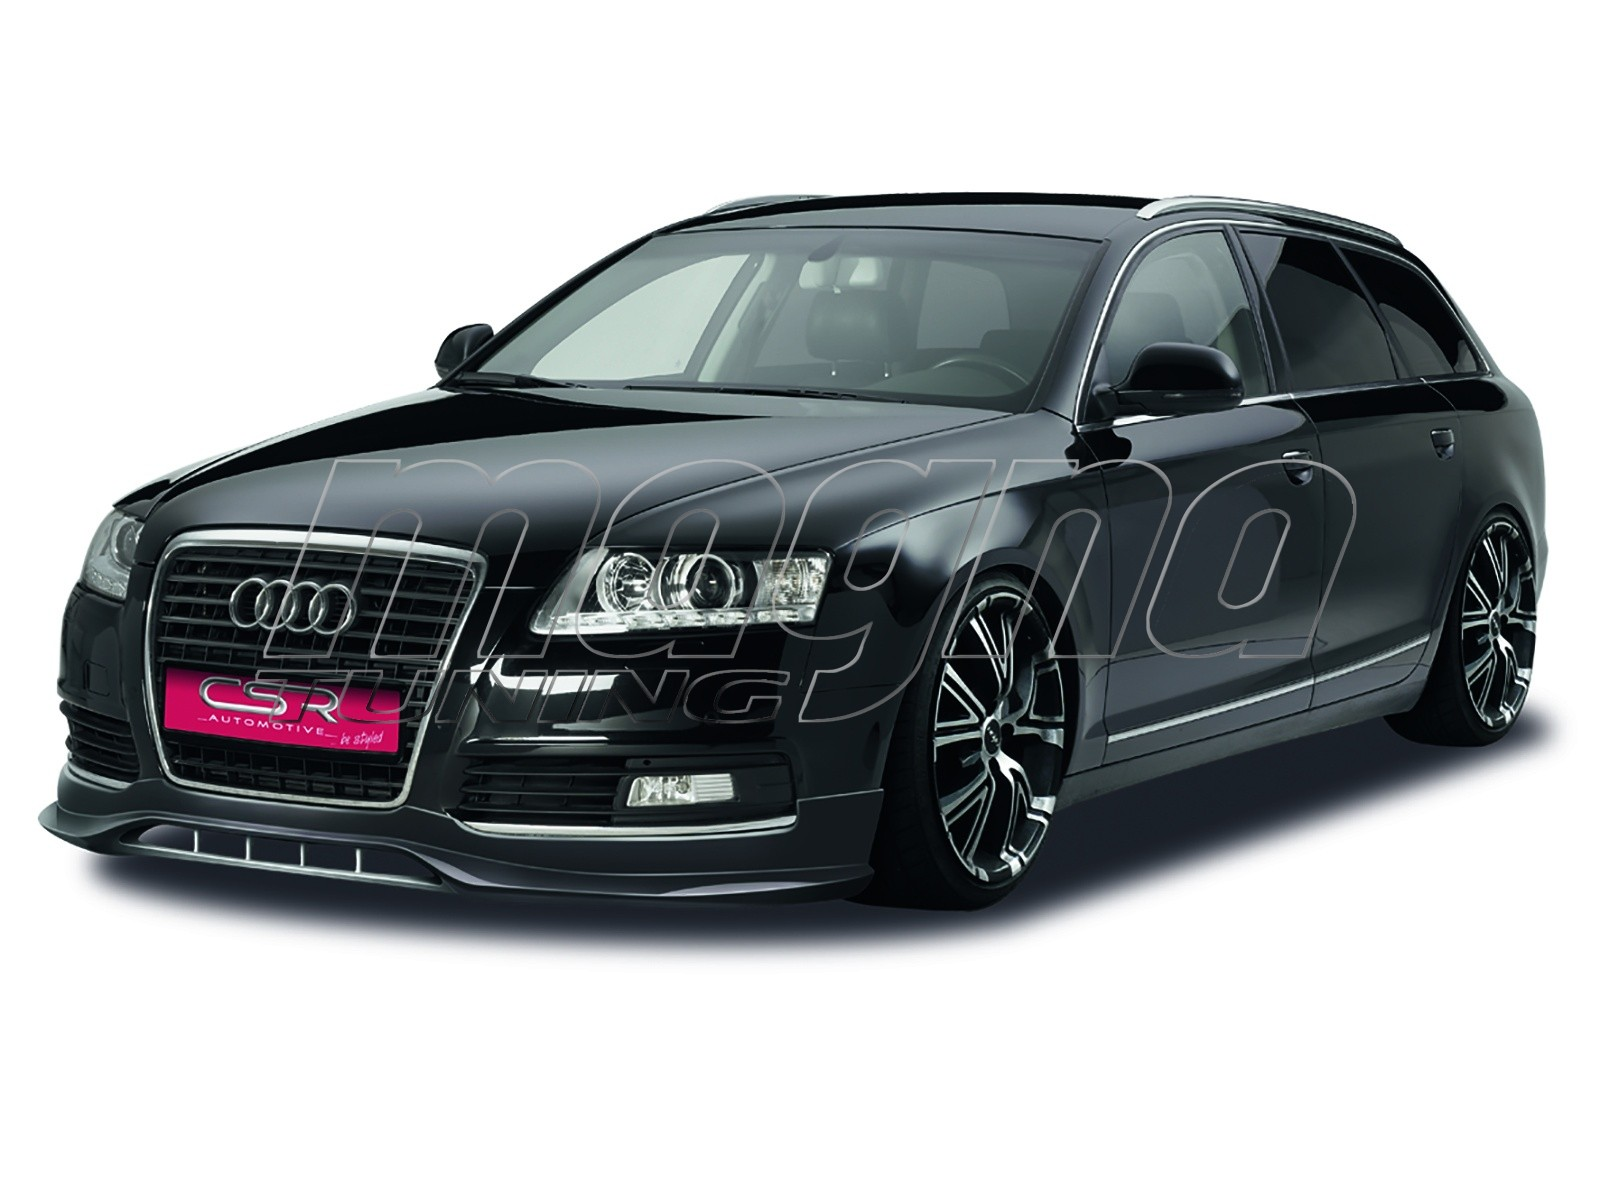 audi a6 c6 4f facelift crono front bumper extension. Black Bedroom Furniture Sets. Home Design Ideas